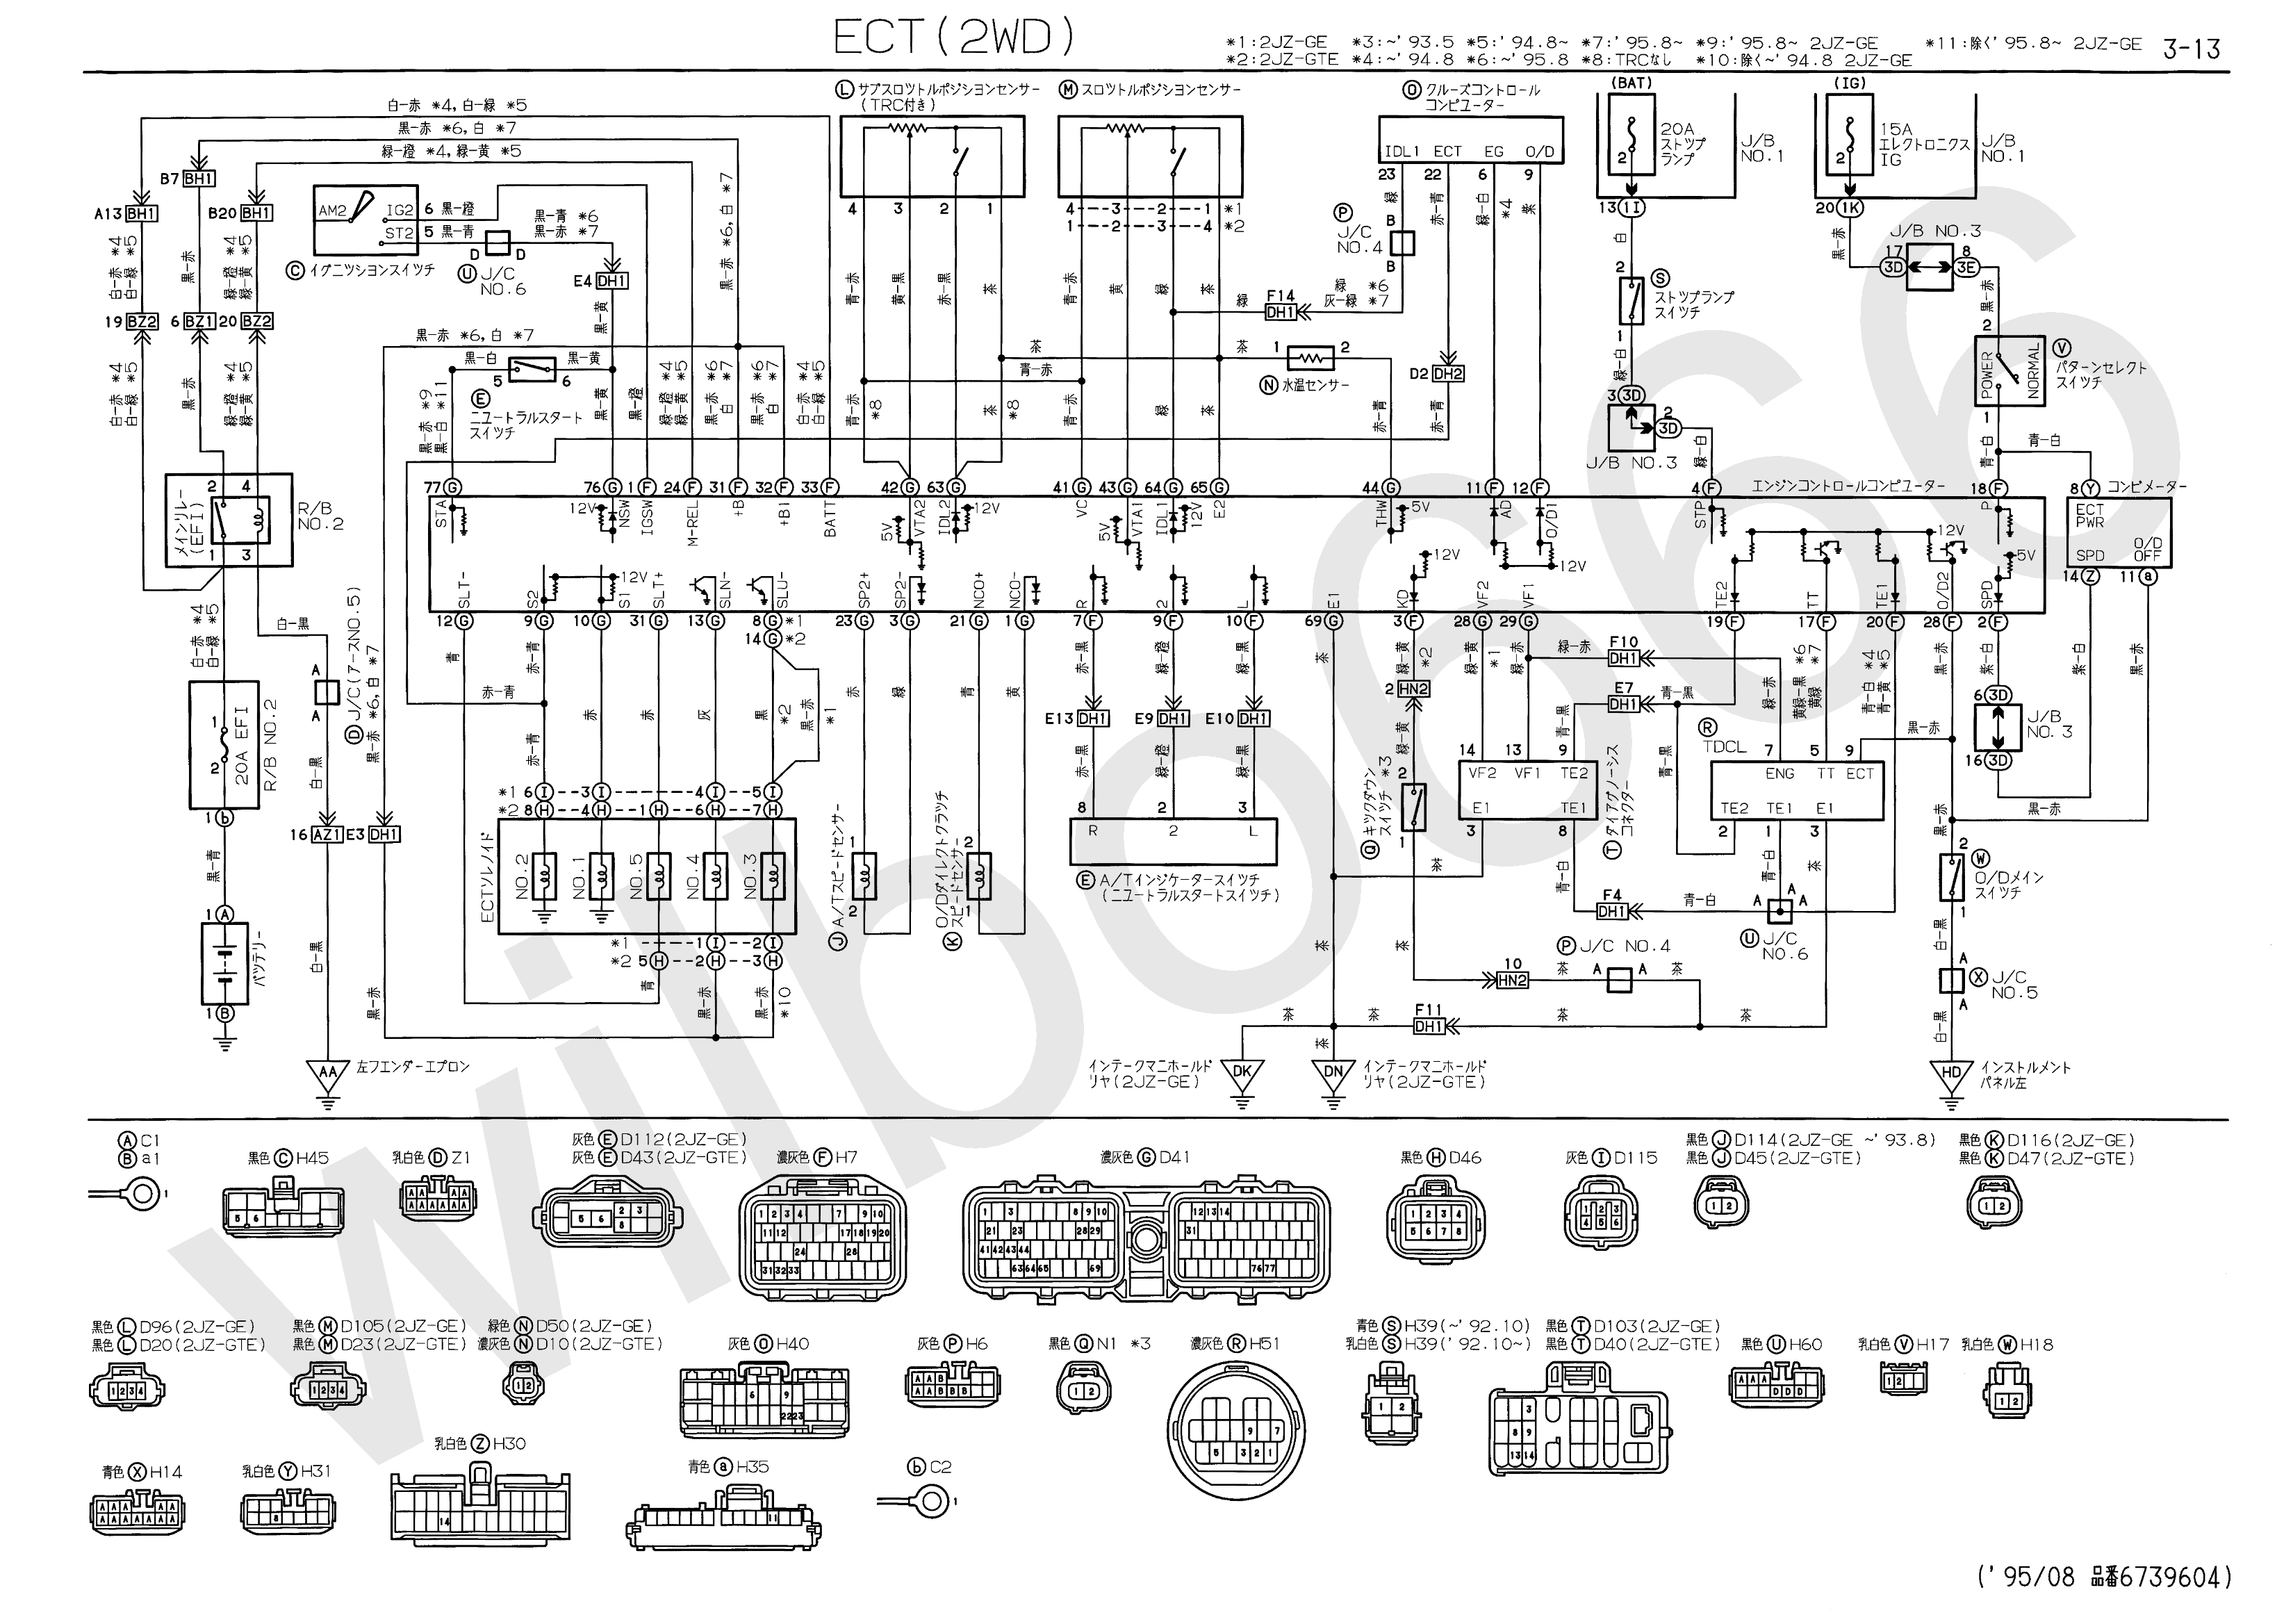 840837 Post likewise 2JZ GTE 20JZS147 20Aristo 20Engine 20Wiring further Af407e6926099e1255e4b266b9dd6128 as well Radio Wiring Diagram 1999s 10 in addition Brake Services. on toyota wiring diagrams schematics